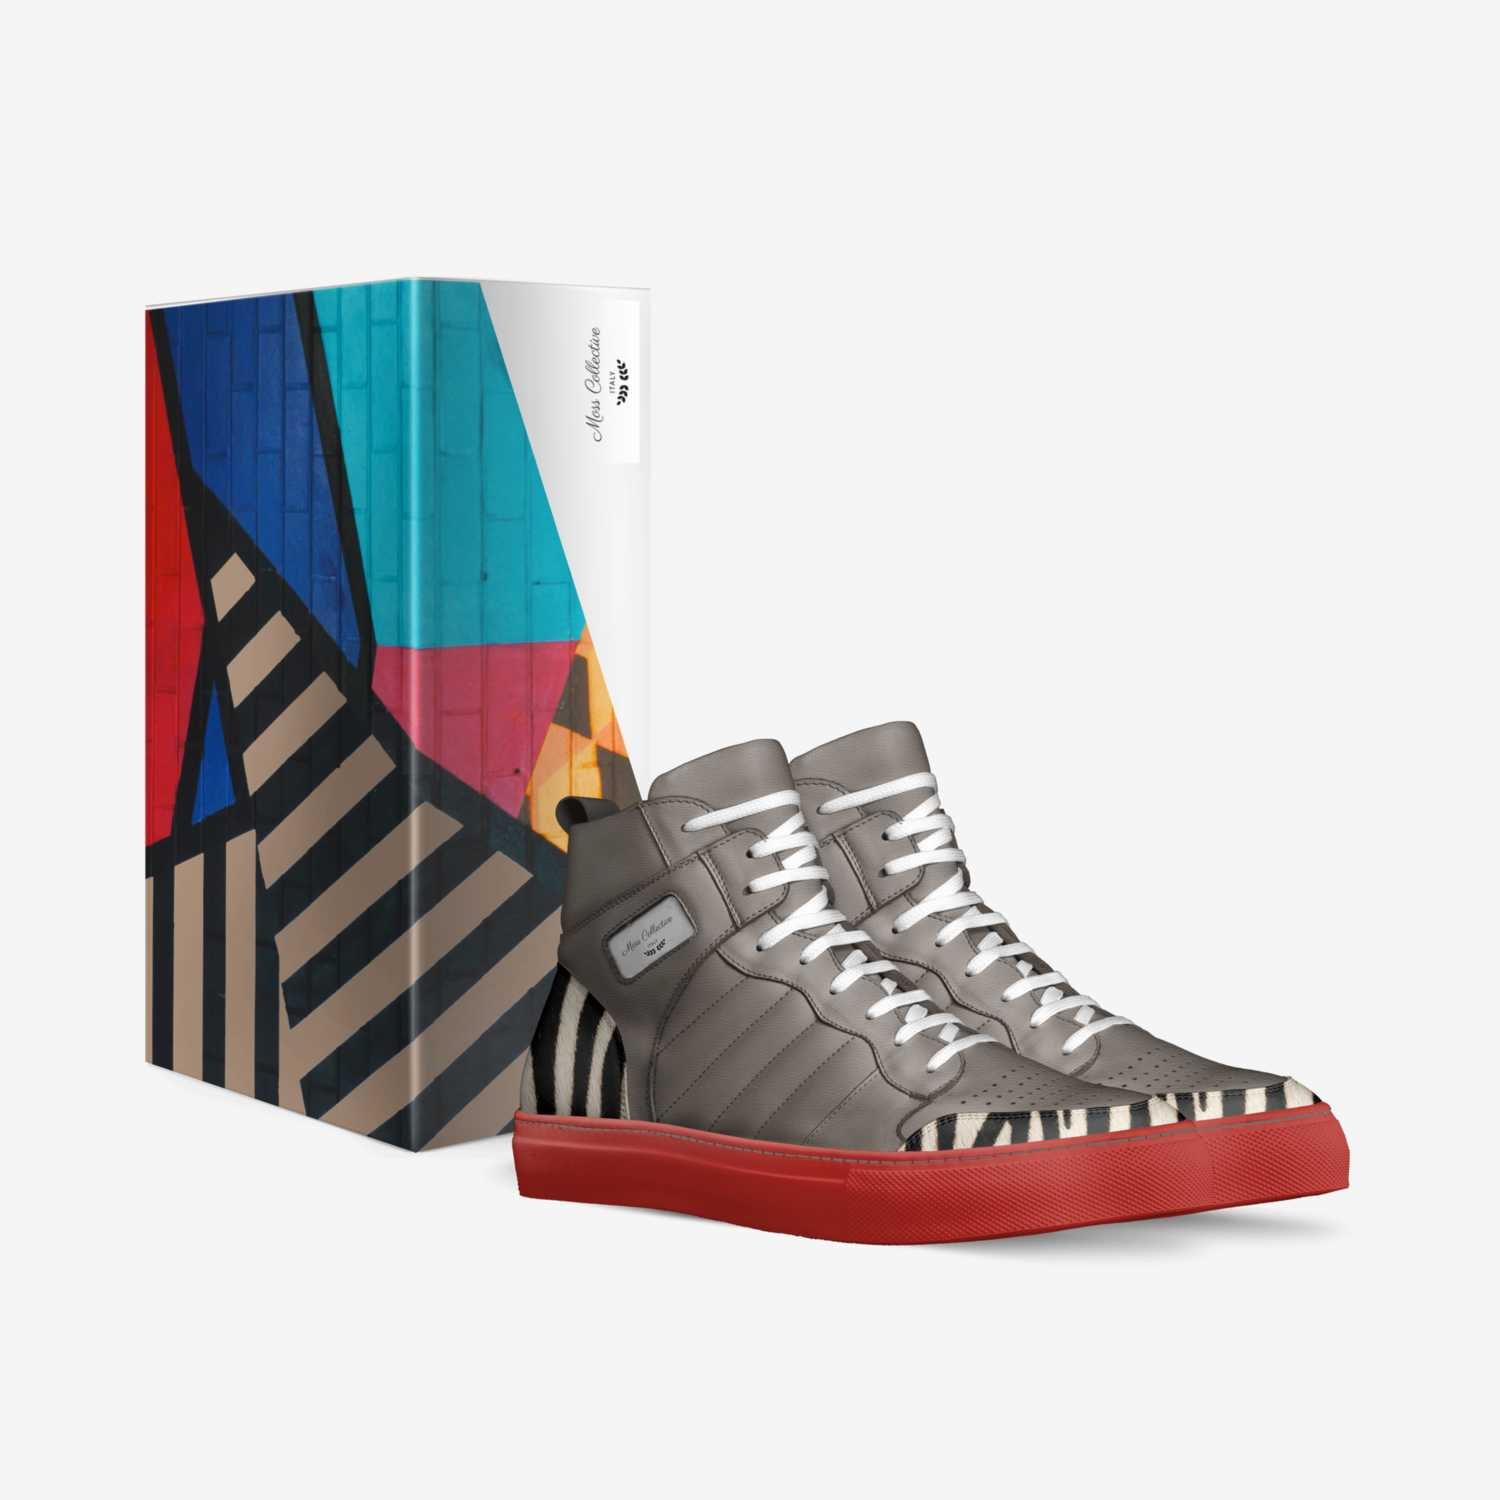 Moss Collective V4 custom made in Italy shoes by Brian Mcfarley   Box view